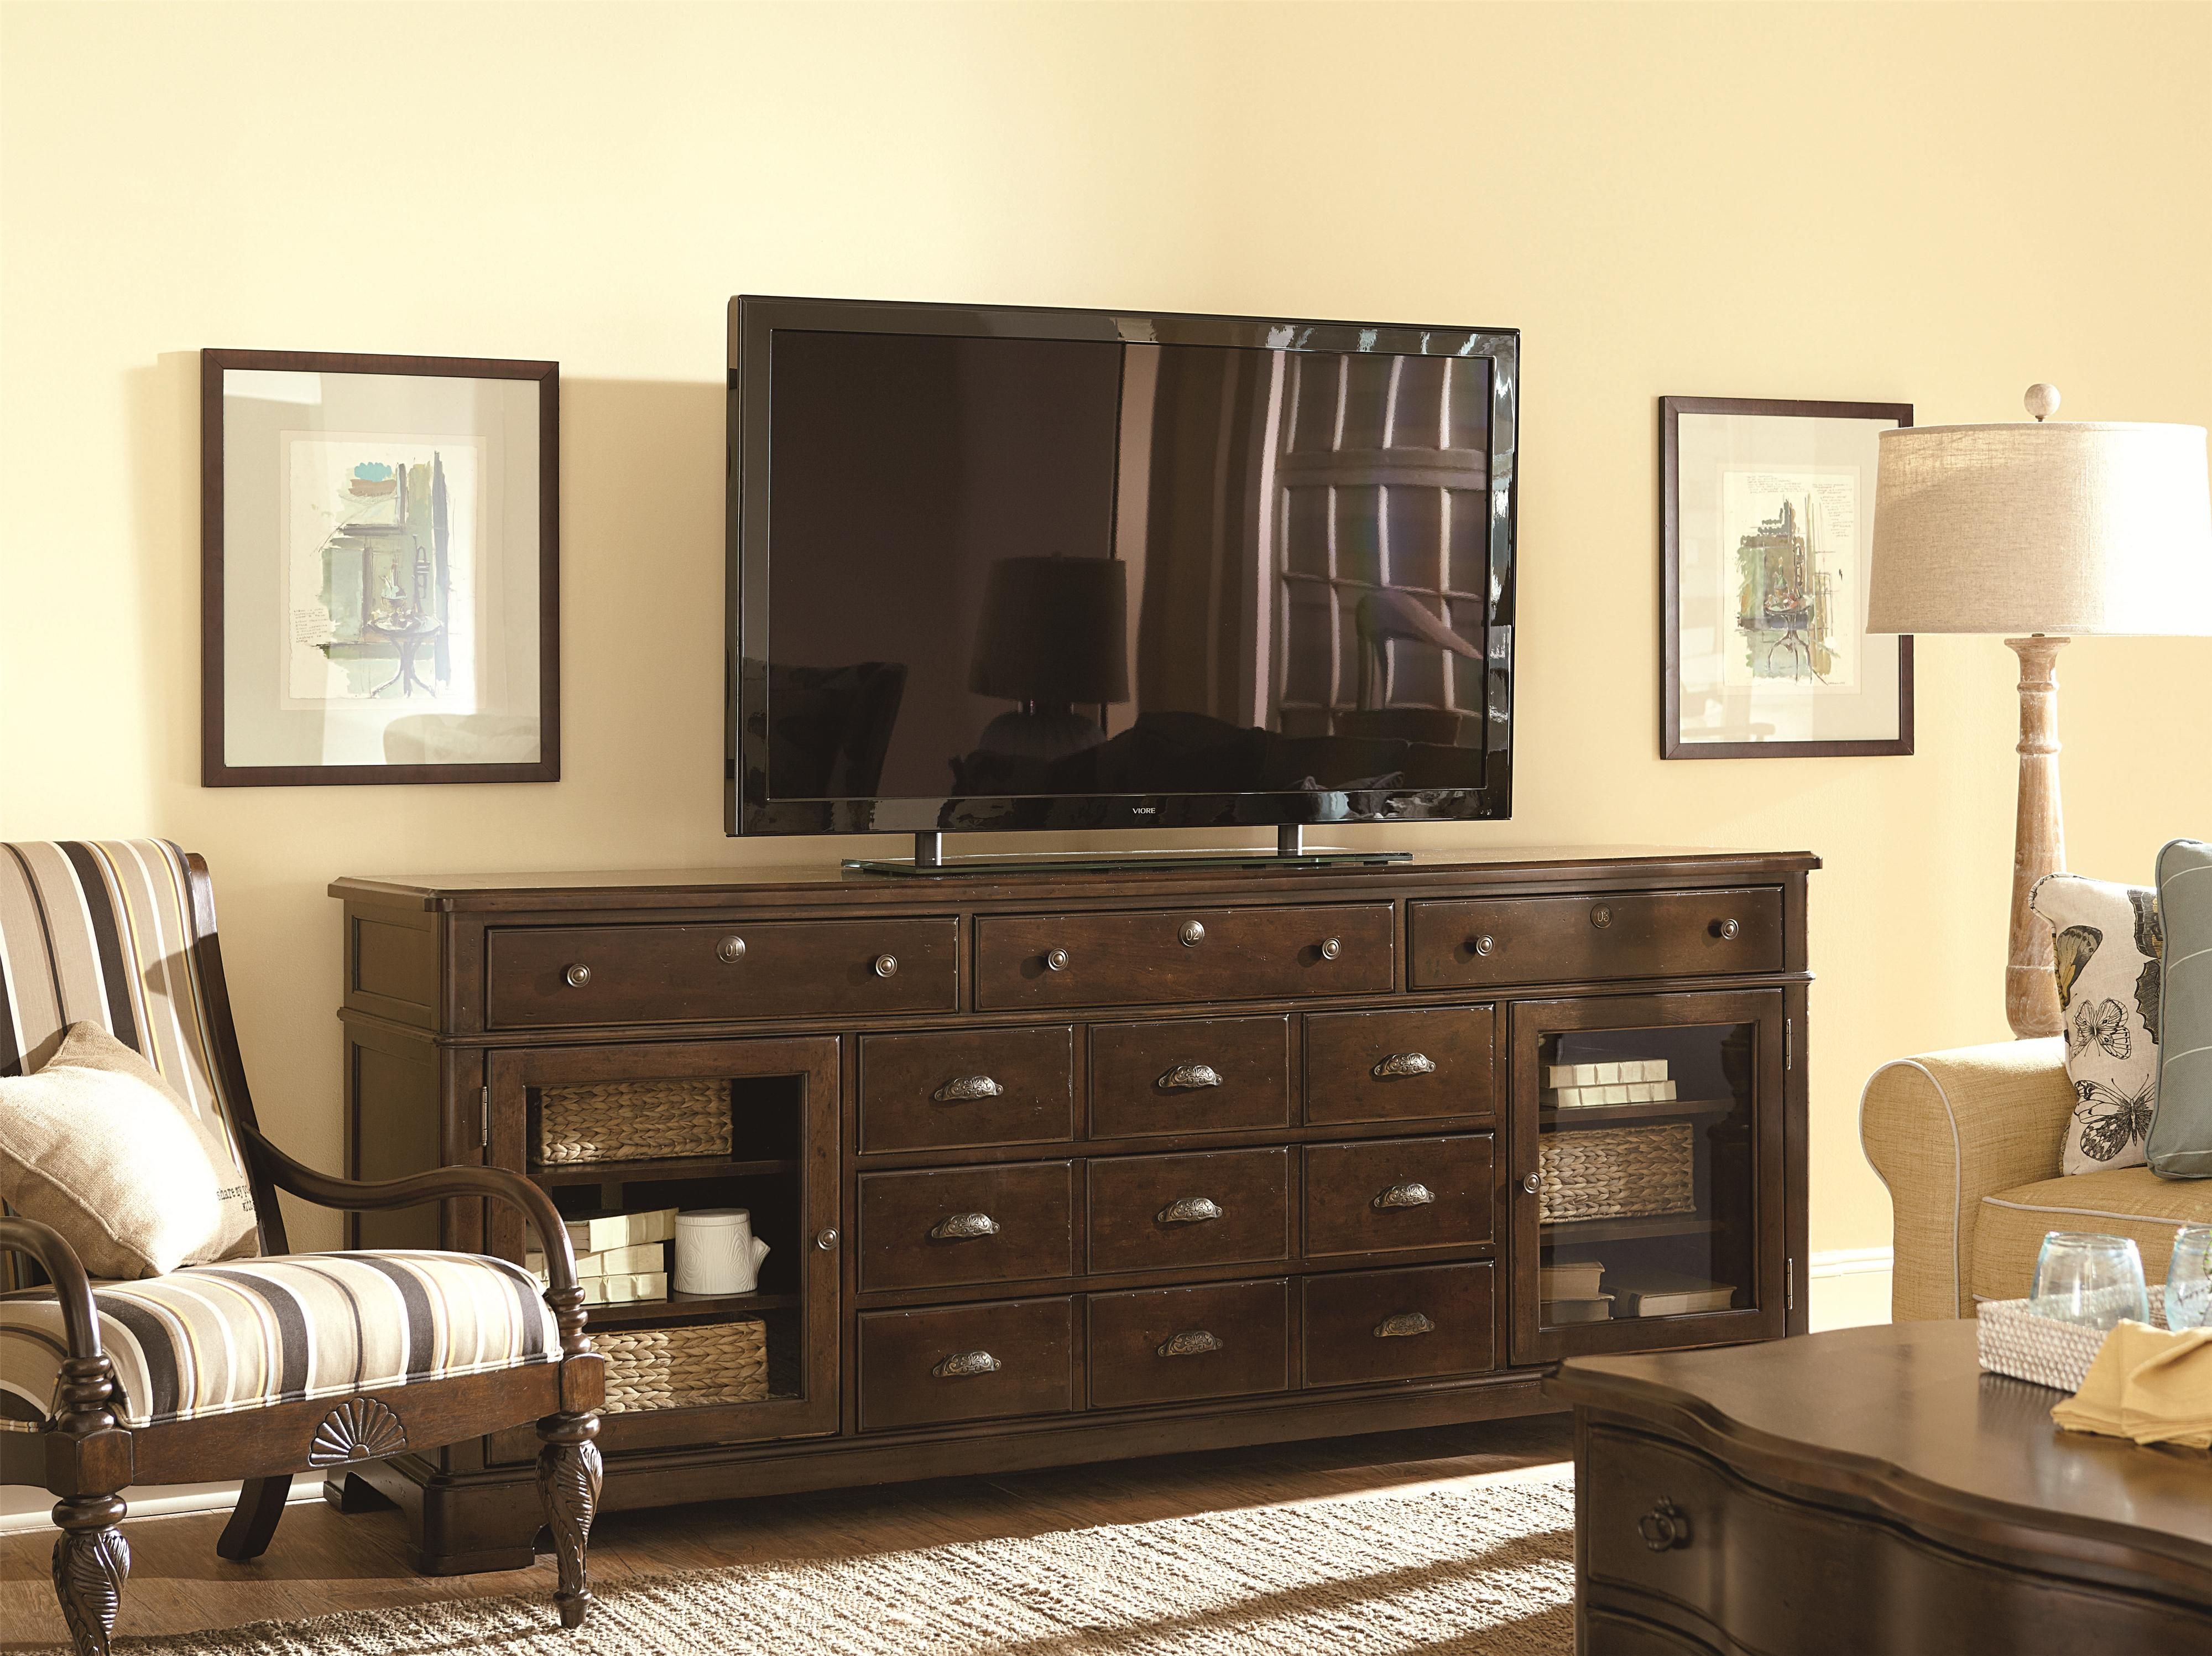 Tv Stand Media Center Paula Deen By Universal River House 6 Drawer